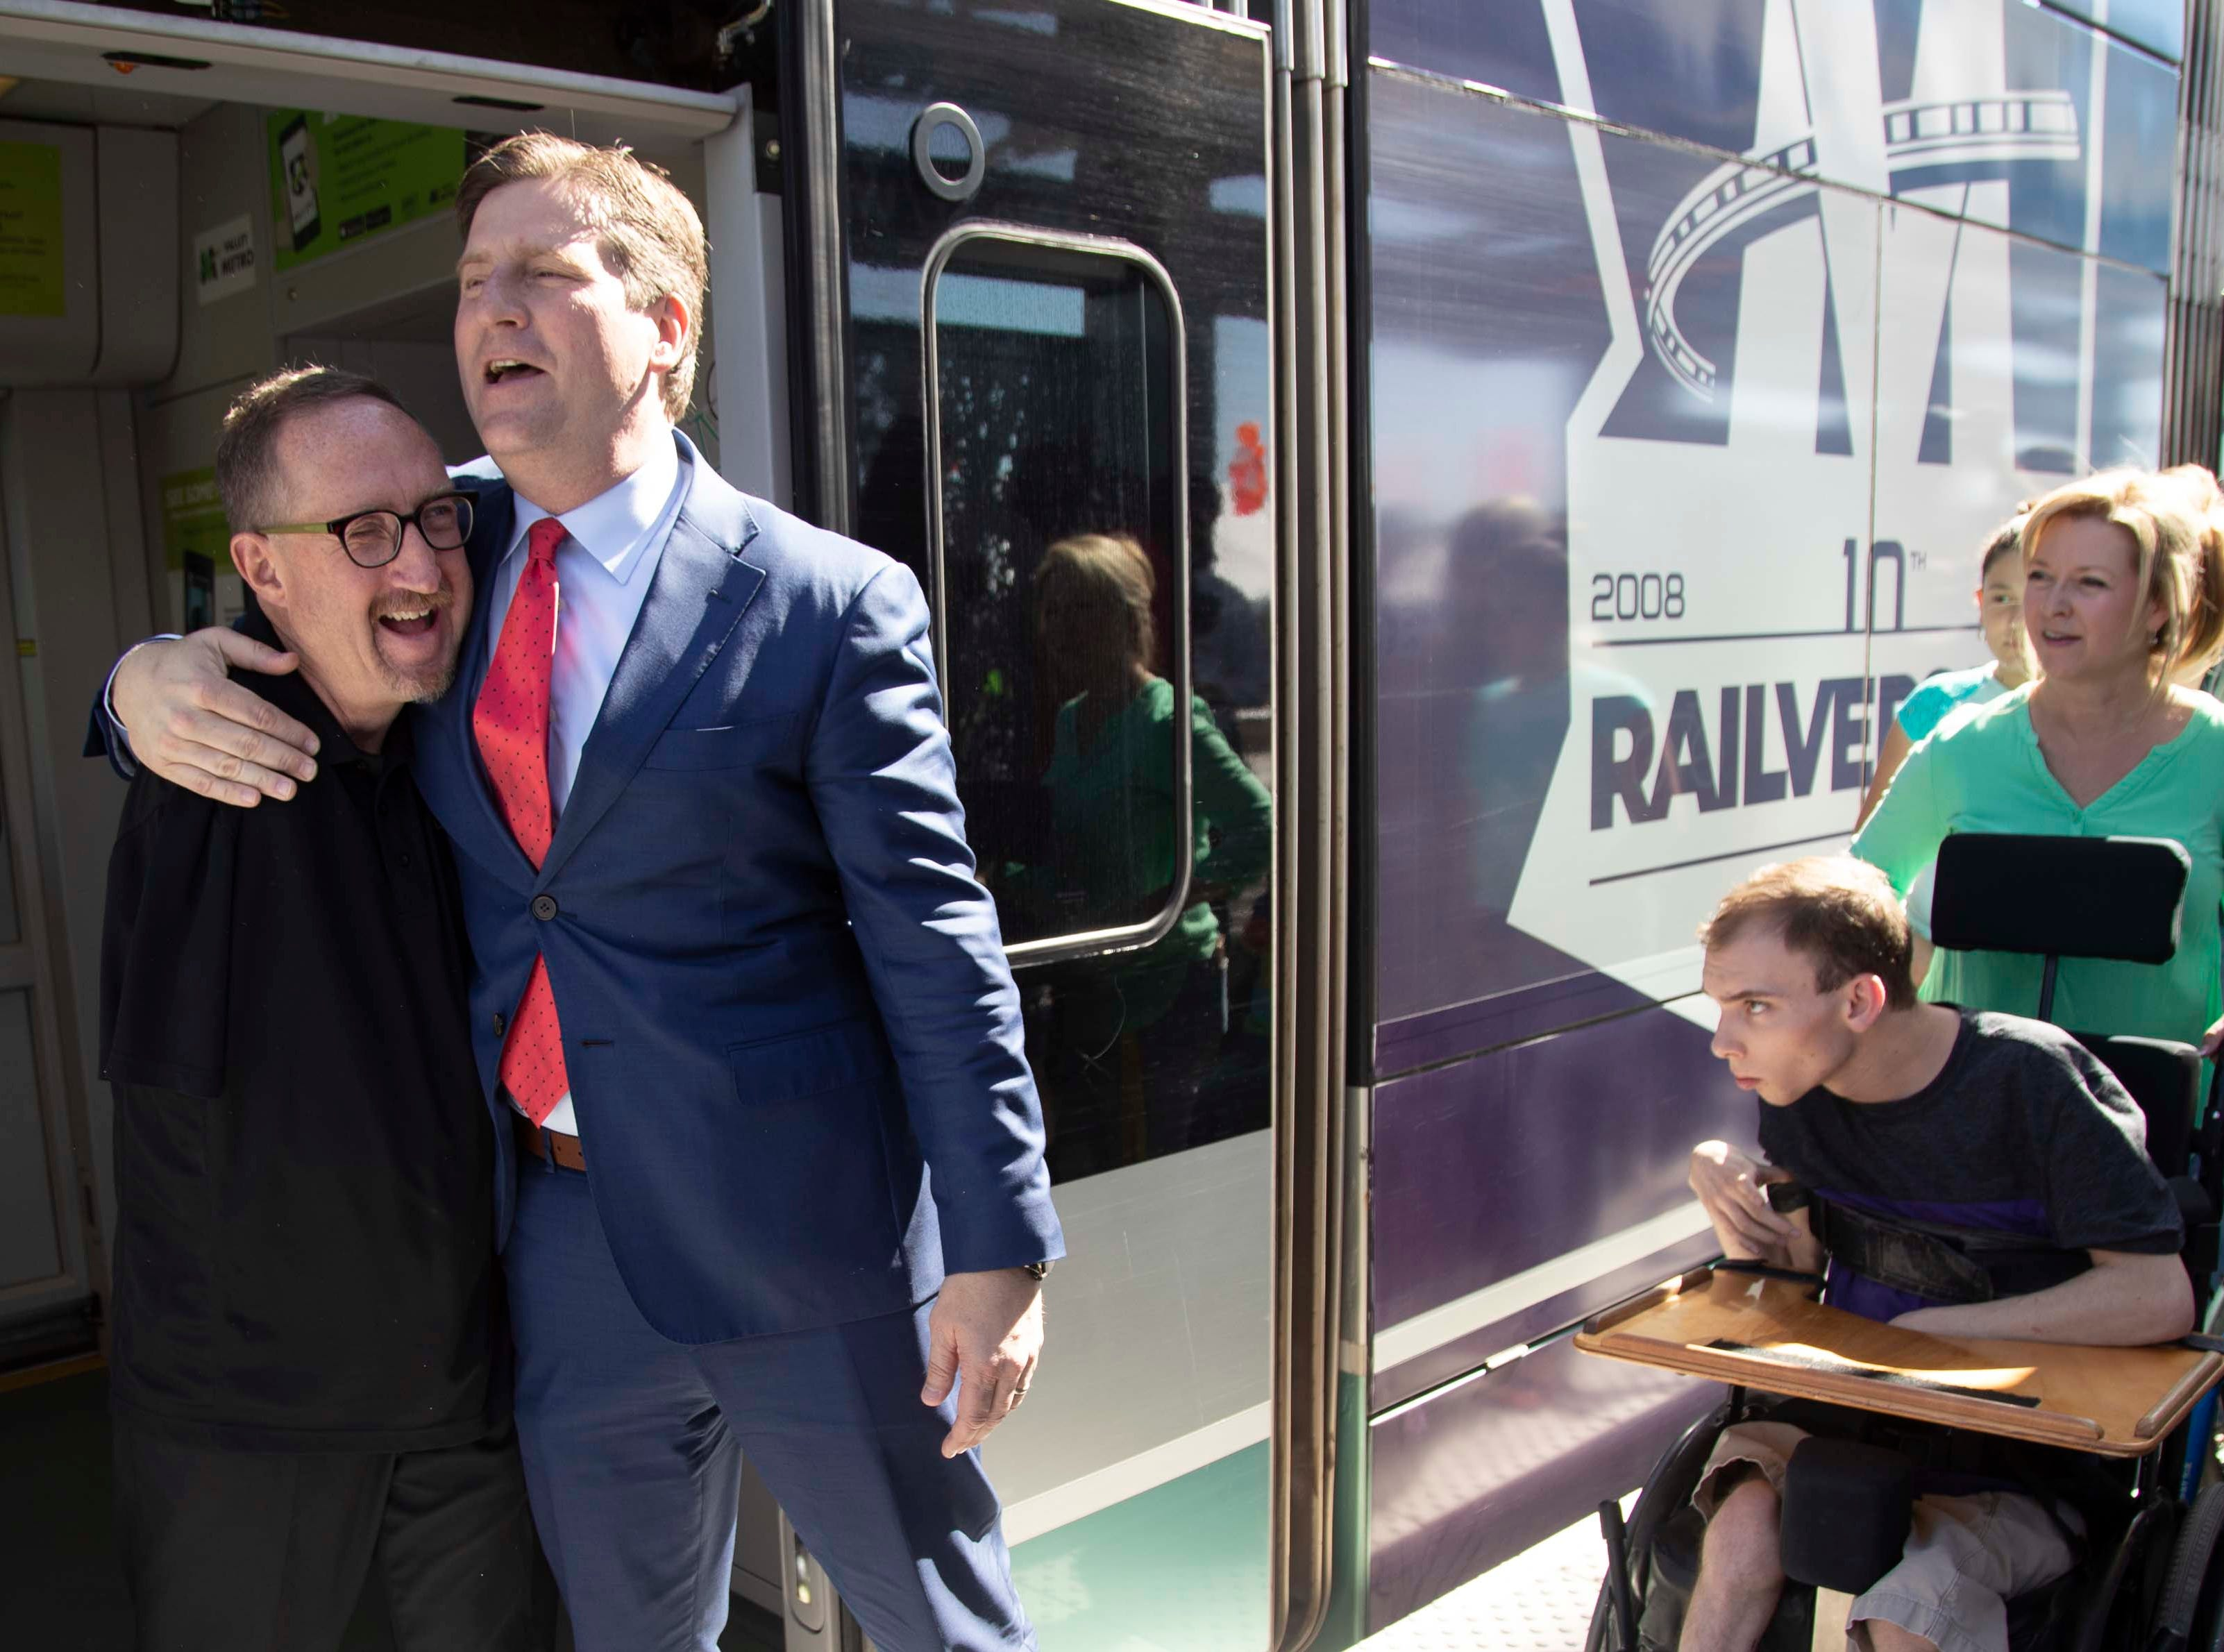 Congressman Greg Stanton welcomes Darrell Christensen and others as the light rail arrived at the 50th Street and Washington station, which will provide additional access to Ability 360, one of Arizona's largest disability resource centers.